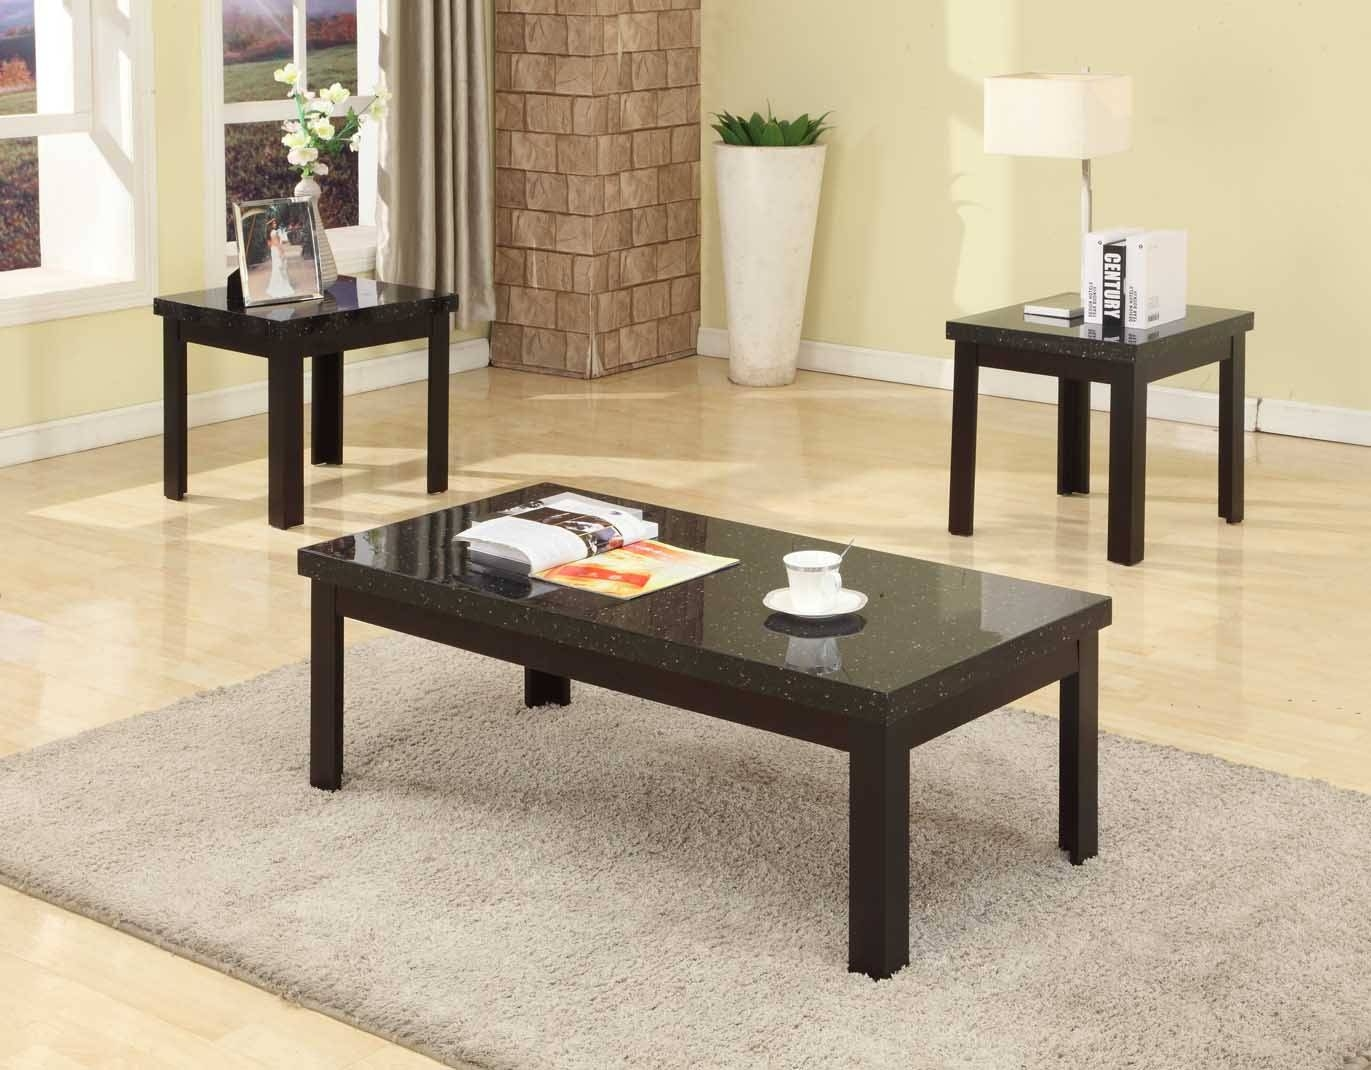 Black Coffee Table And End Table Sets | Coffee Tables Decoration pertaining to Coffee Table With Matching End Tables (Image 2 of 30)